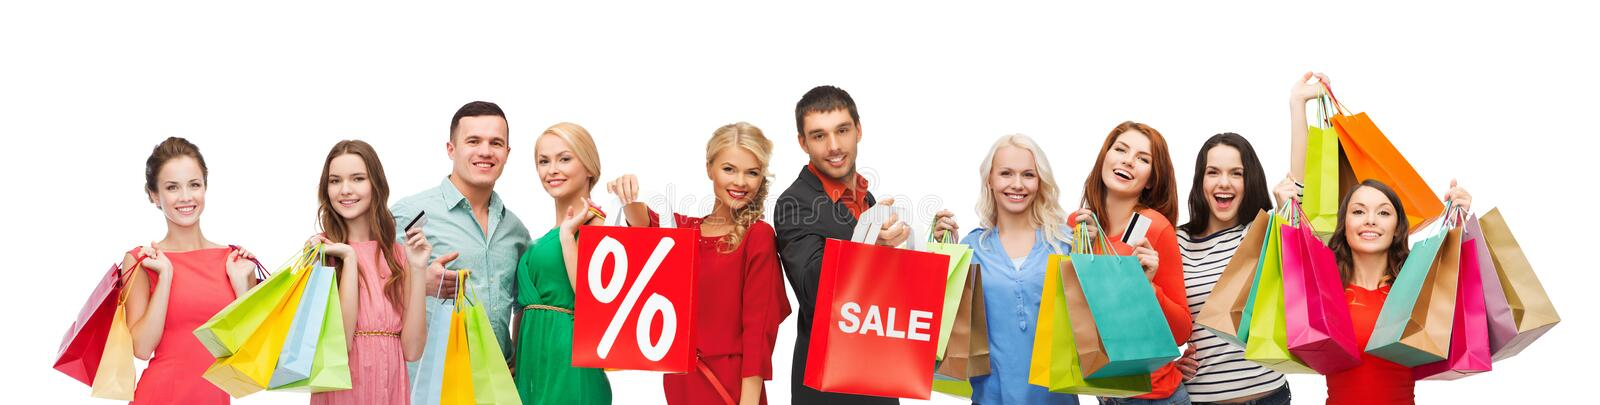 Happy people with sale sign on shopping bags royalty free stock photos